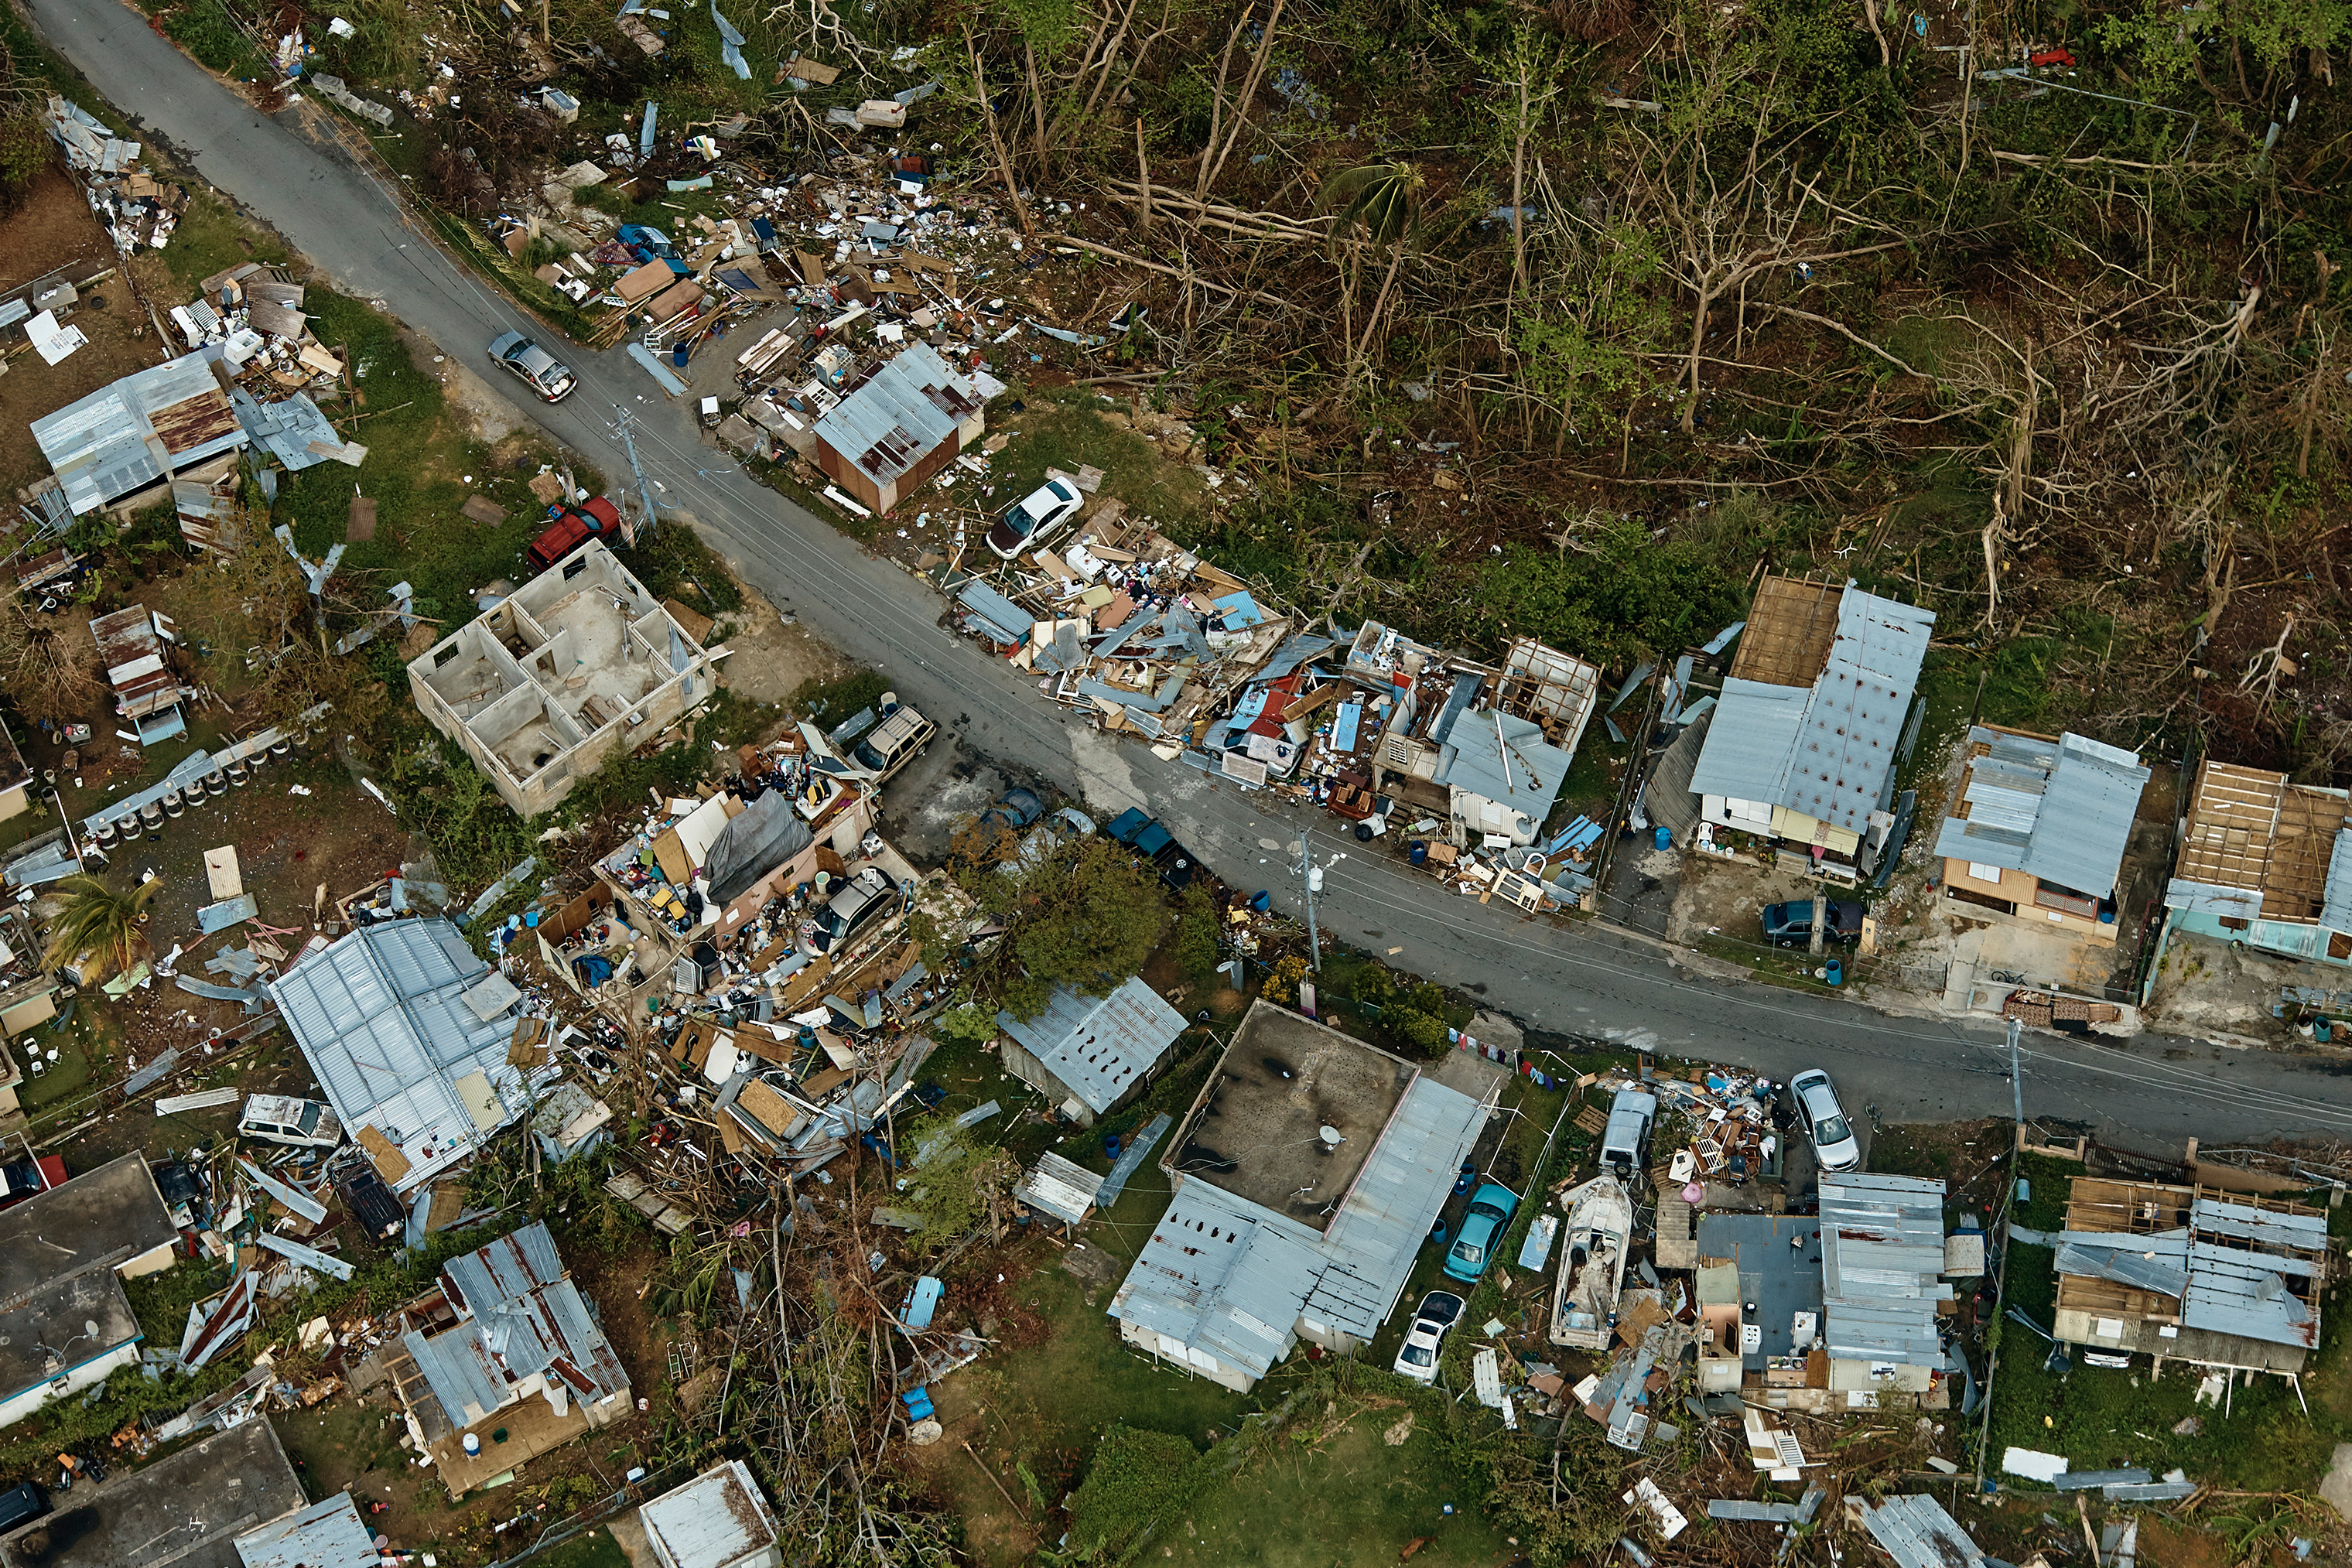 The view from a helicopter over Toa Alta, a town outside San Juan, Puerto Rico, on Oct. 6, 2017.